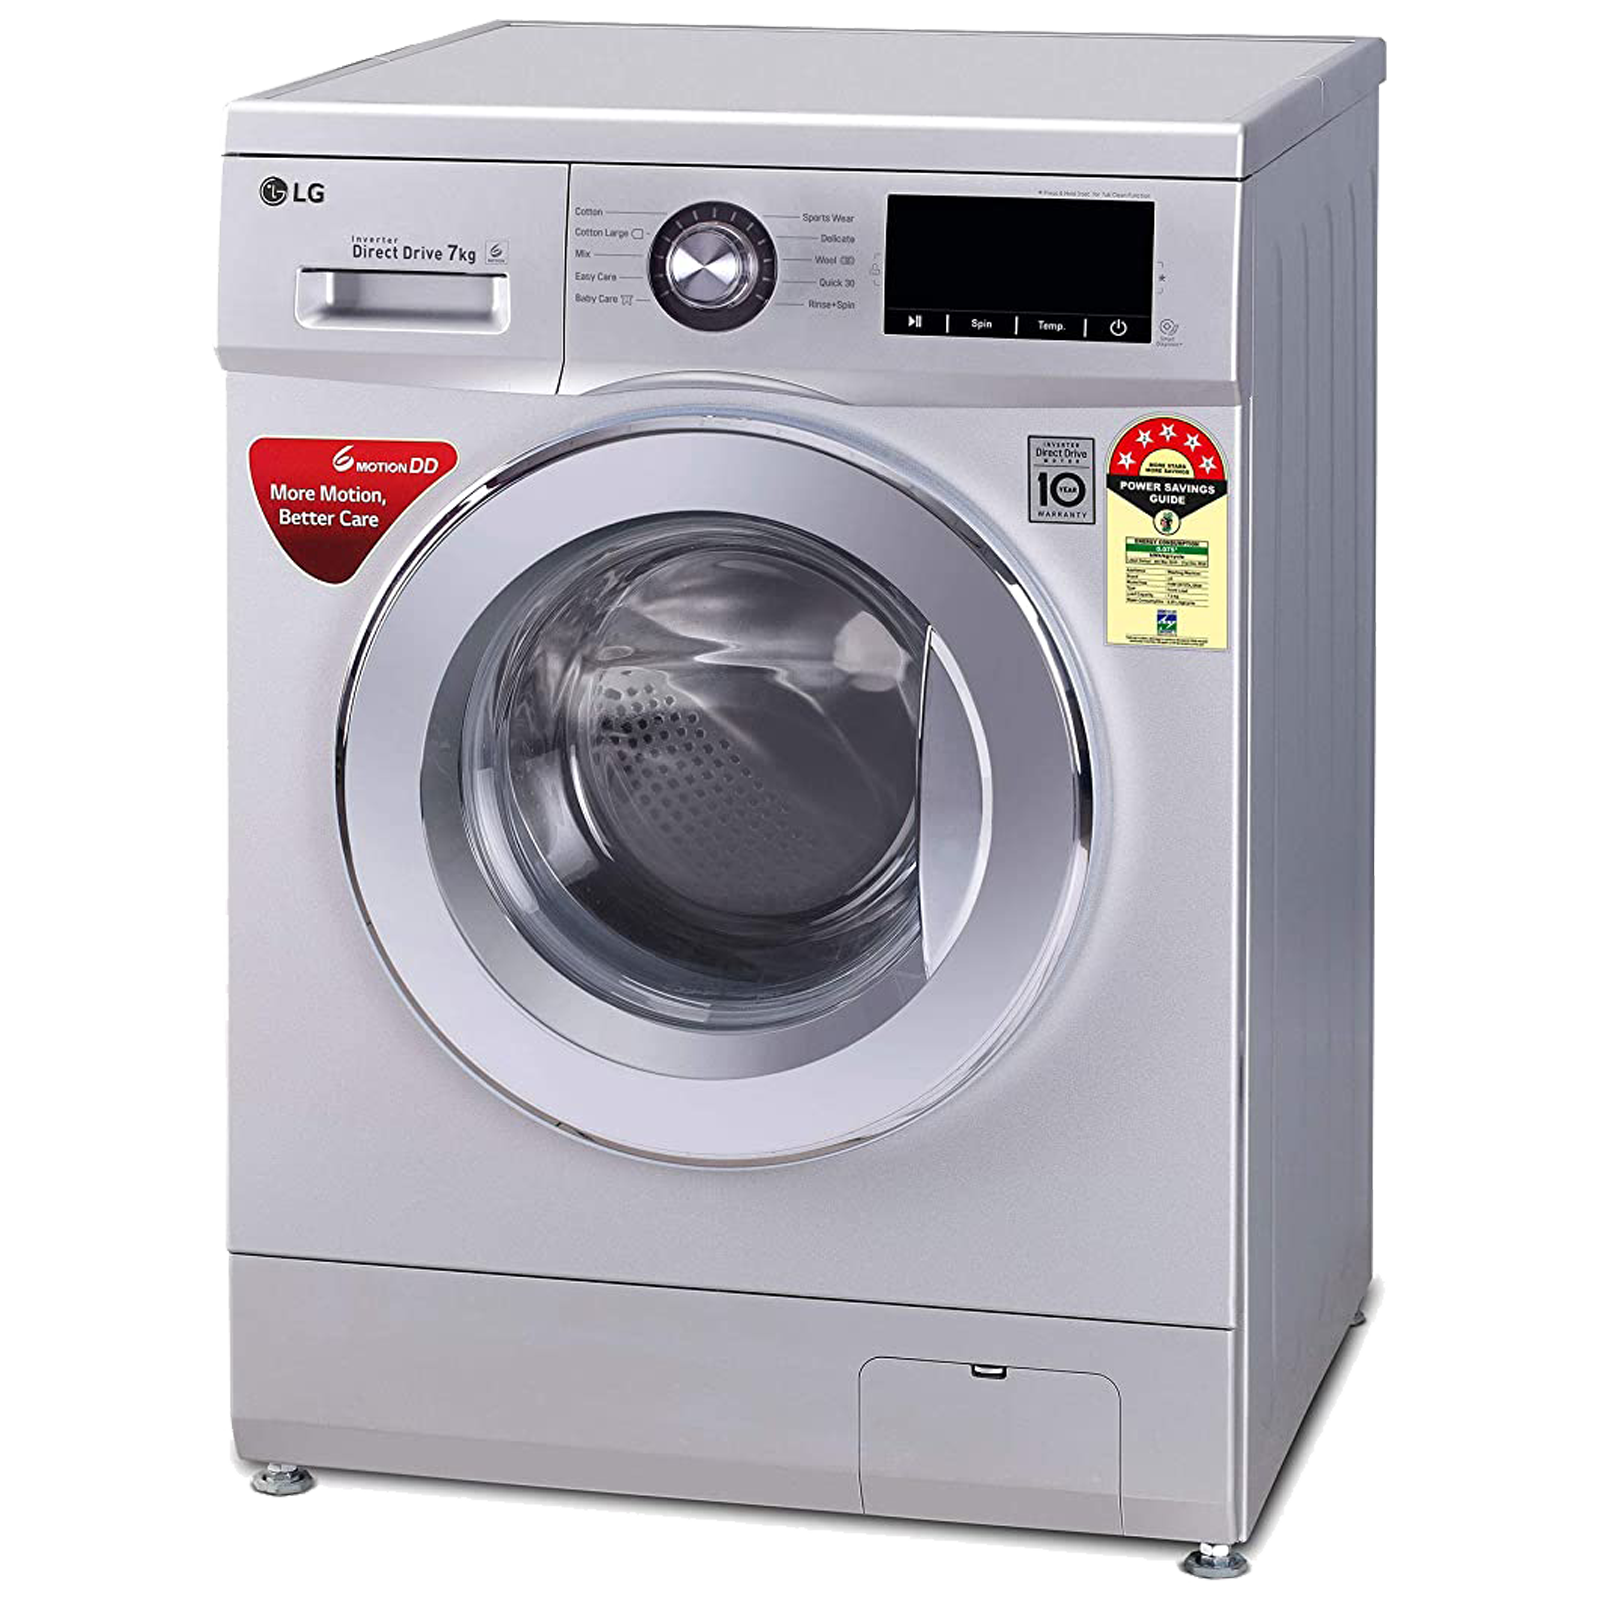 LG 7 kg 5 Star Fully Automatic Front Load Washing Machine (Smart Diagnosis, FHM1207ZDL.ALSQEIL, Luxury Silver) 3